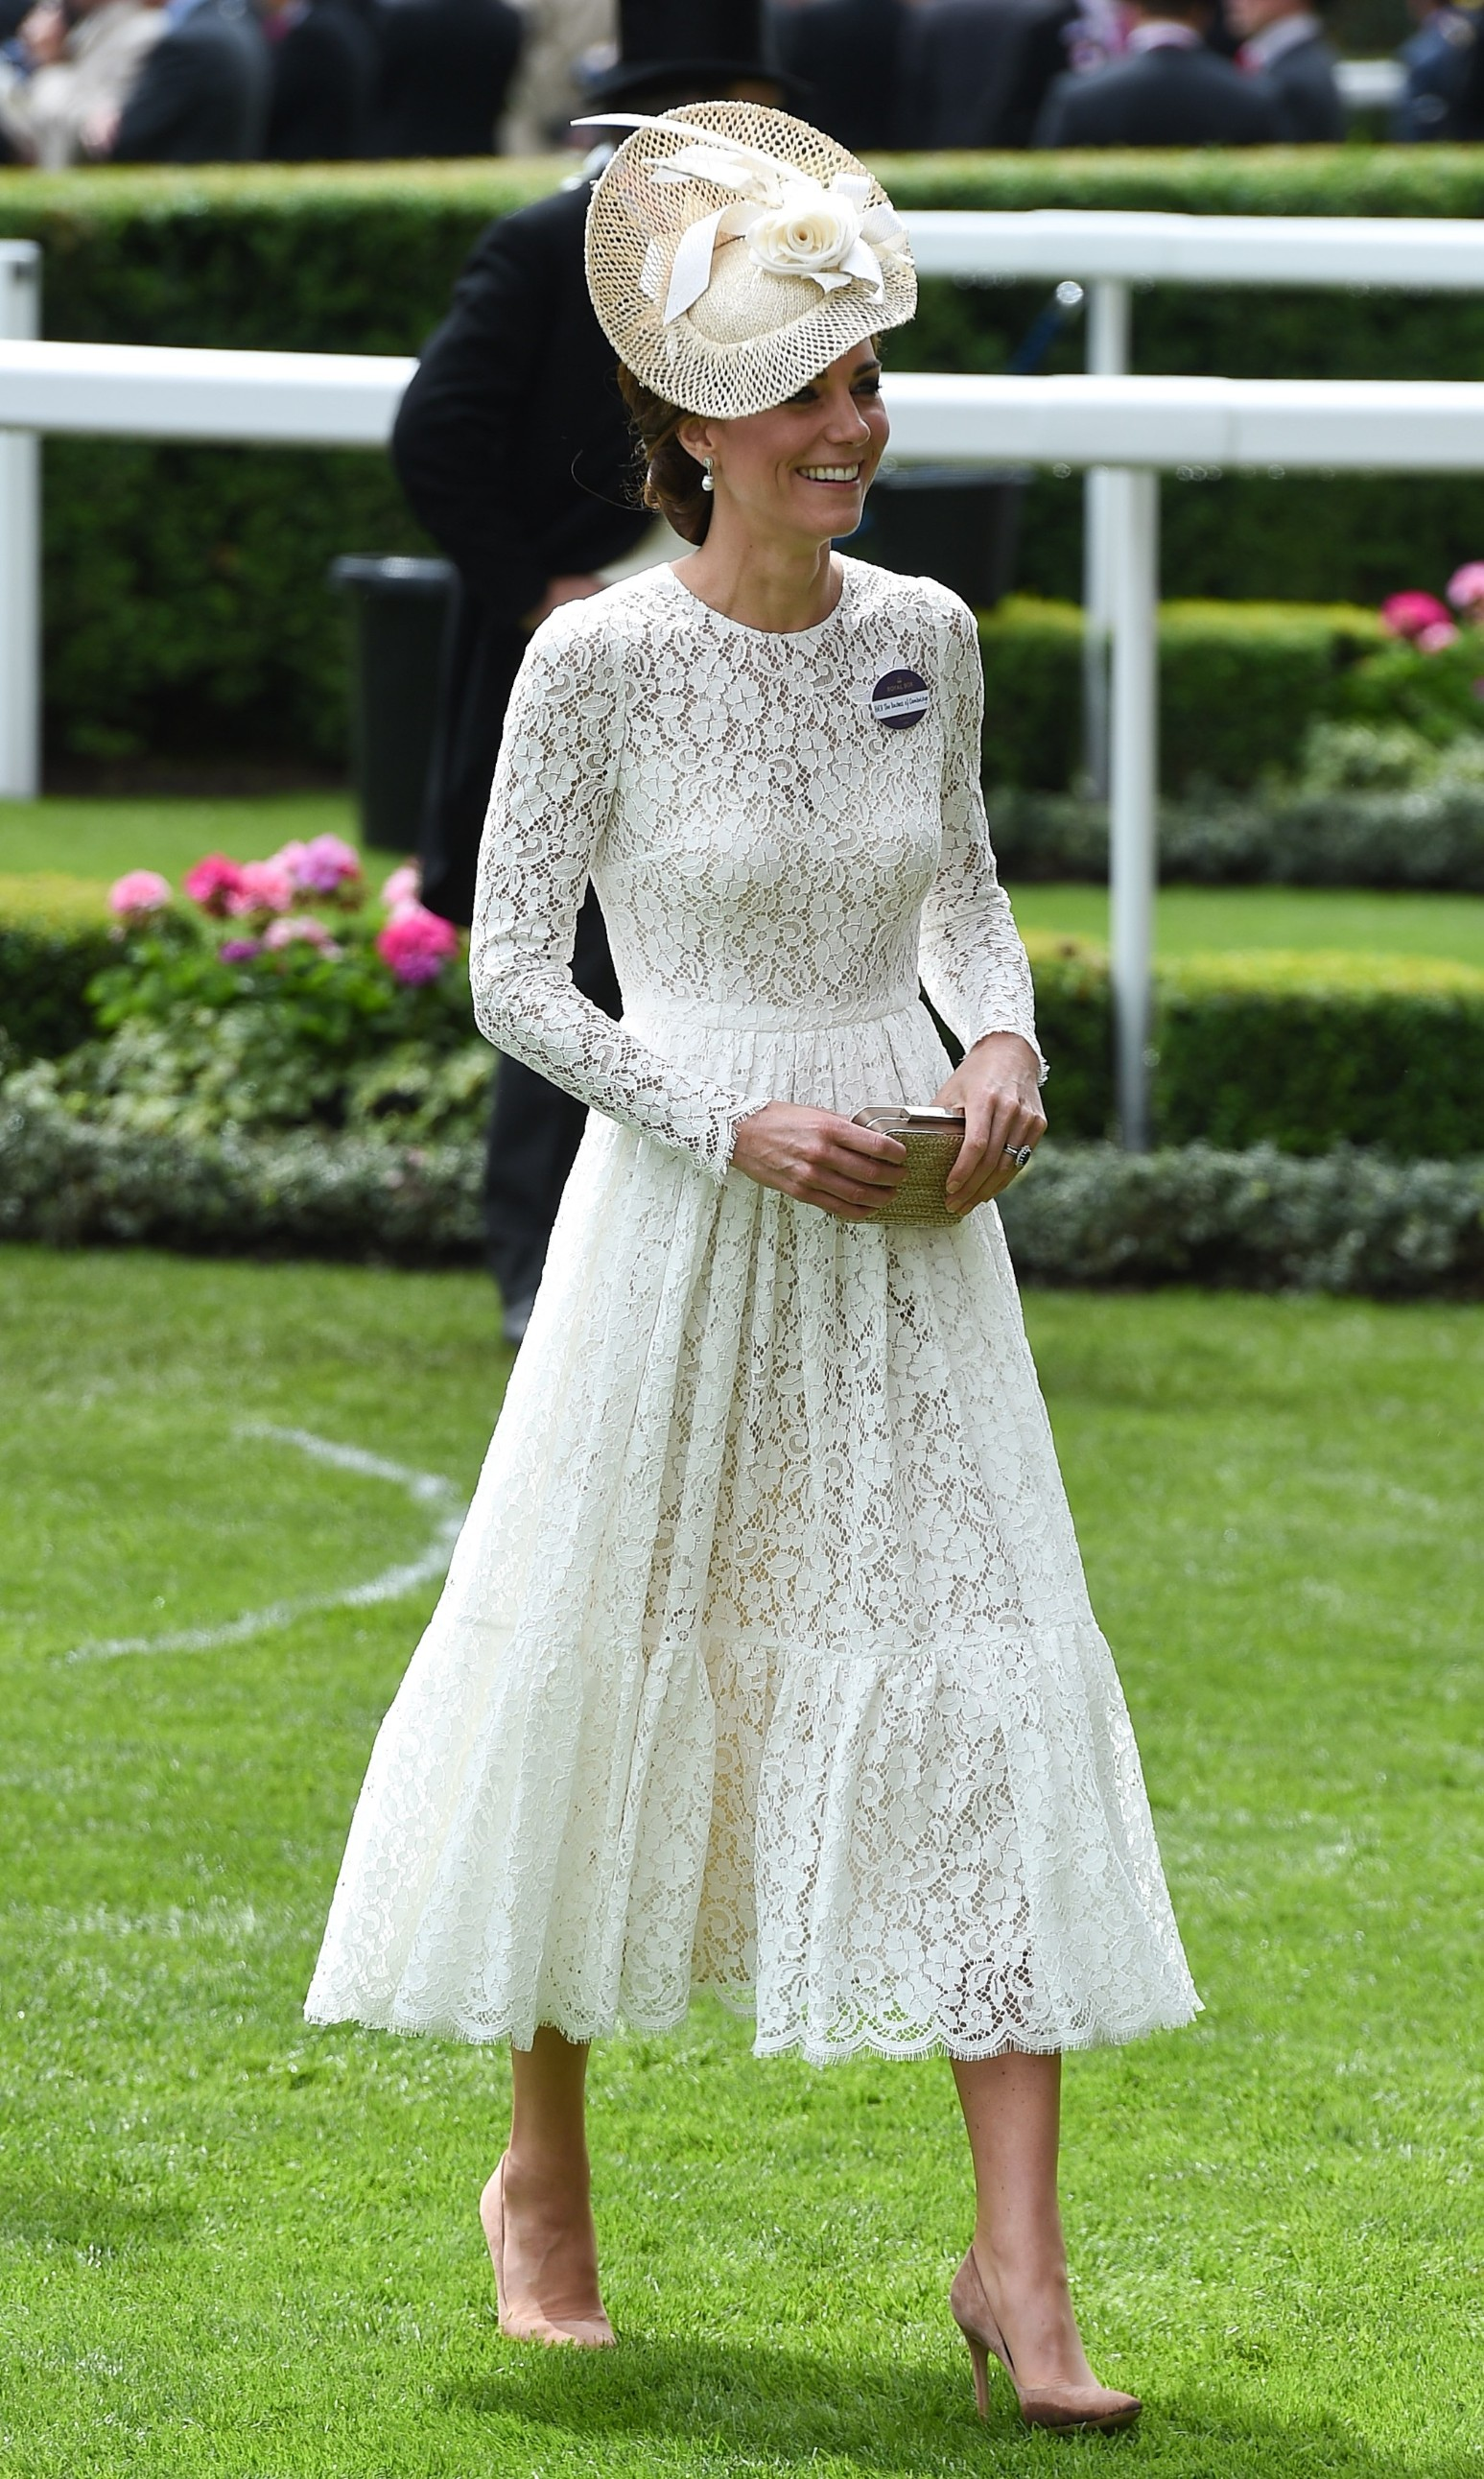 15 June 2016.  Royal Ascot 2016 held at Ascot Racecourse, Ascot, Berkshire.  Here: Catherine, Duchess of Cambridge,Image: 290816704, License: Rights-managed, Restrictions: , Model Release: no, Credit line: GoffPhotos.com / Goff Photos / Profimedia